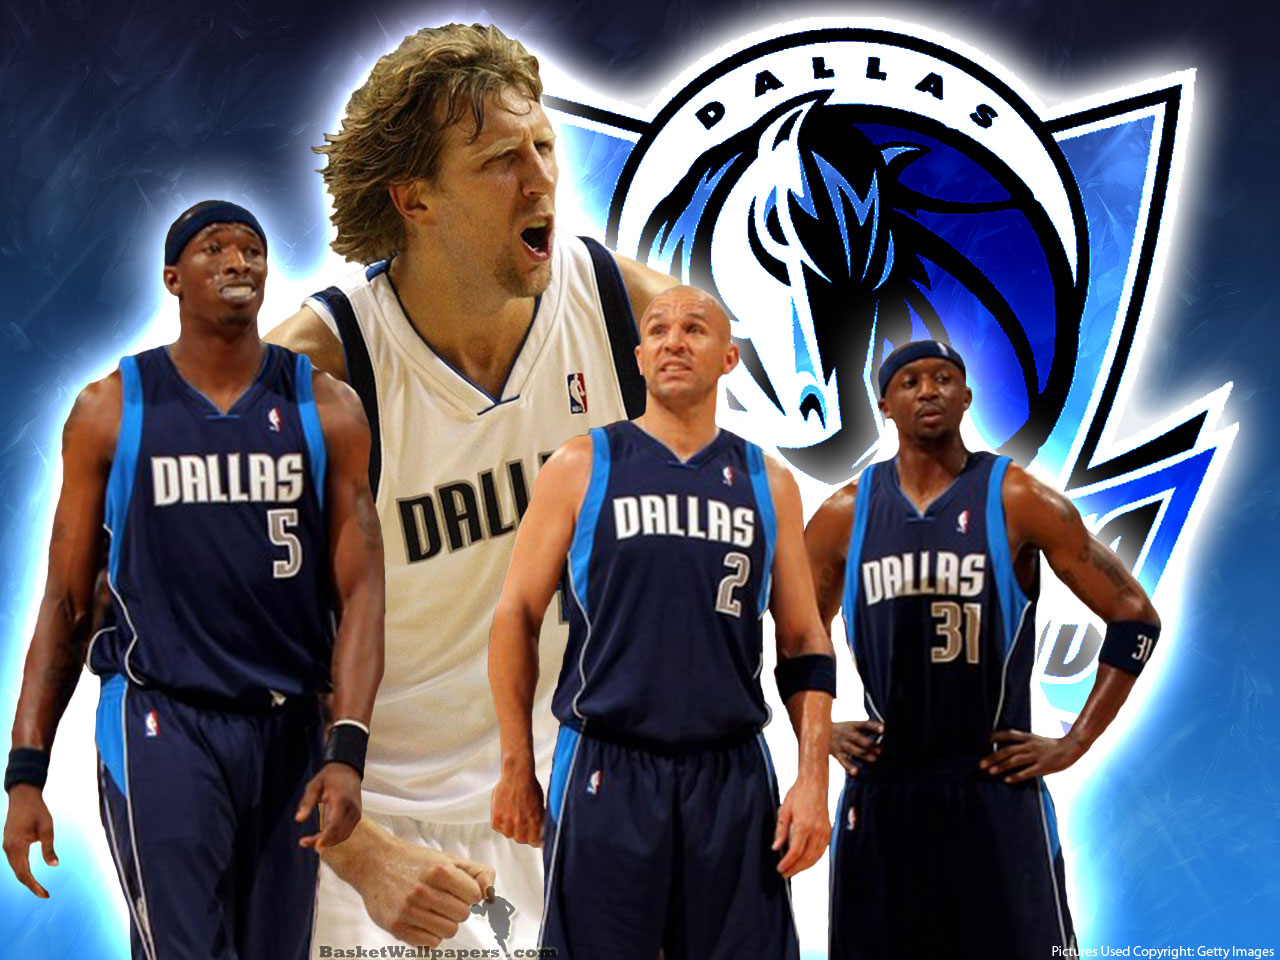 Posted in: Dallas Mavericks